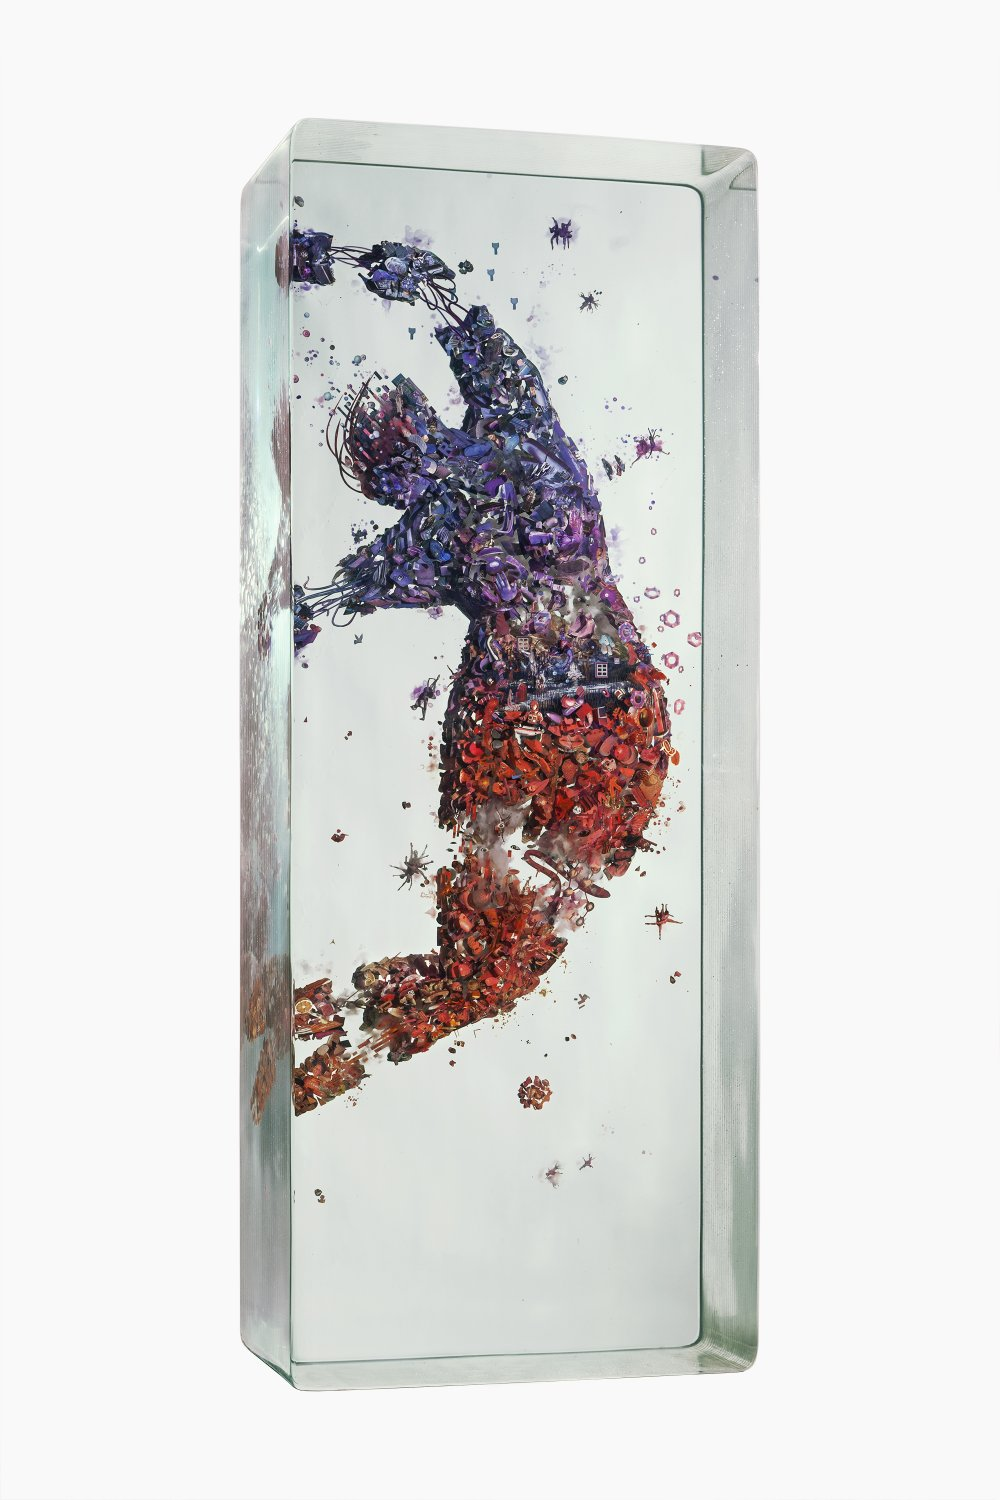 3d collage of human figures in multiple layers of glass